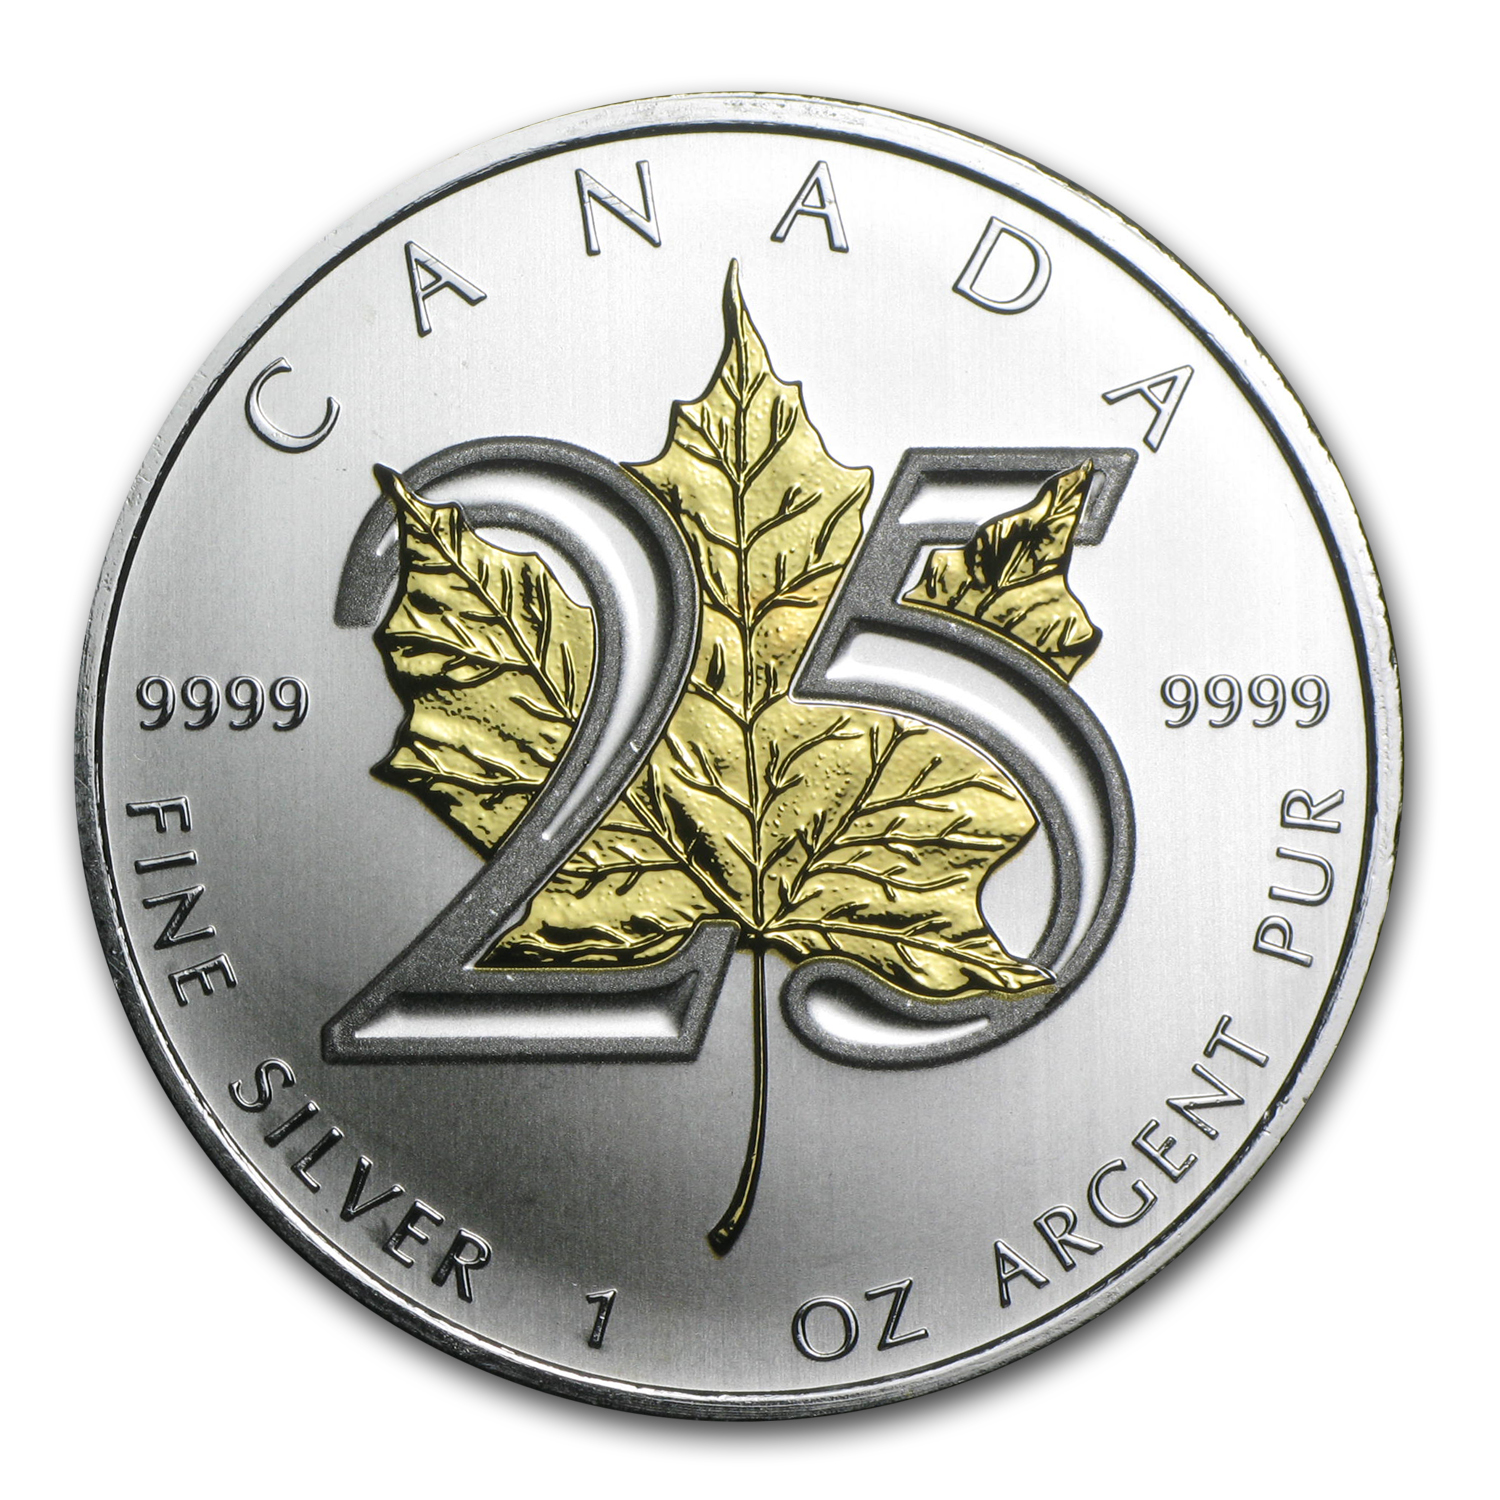 2013 Canada 1 oz Silver Maple Leaf BU (25th Anniv, Gilded Leaf)